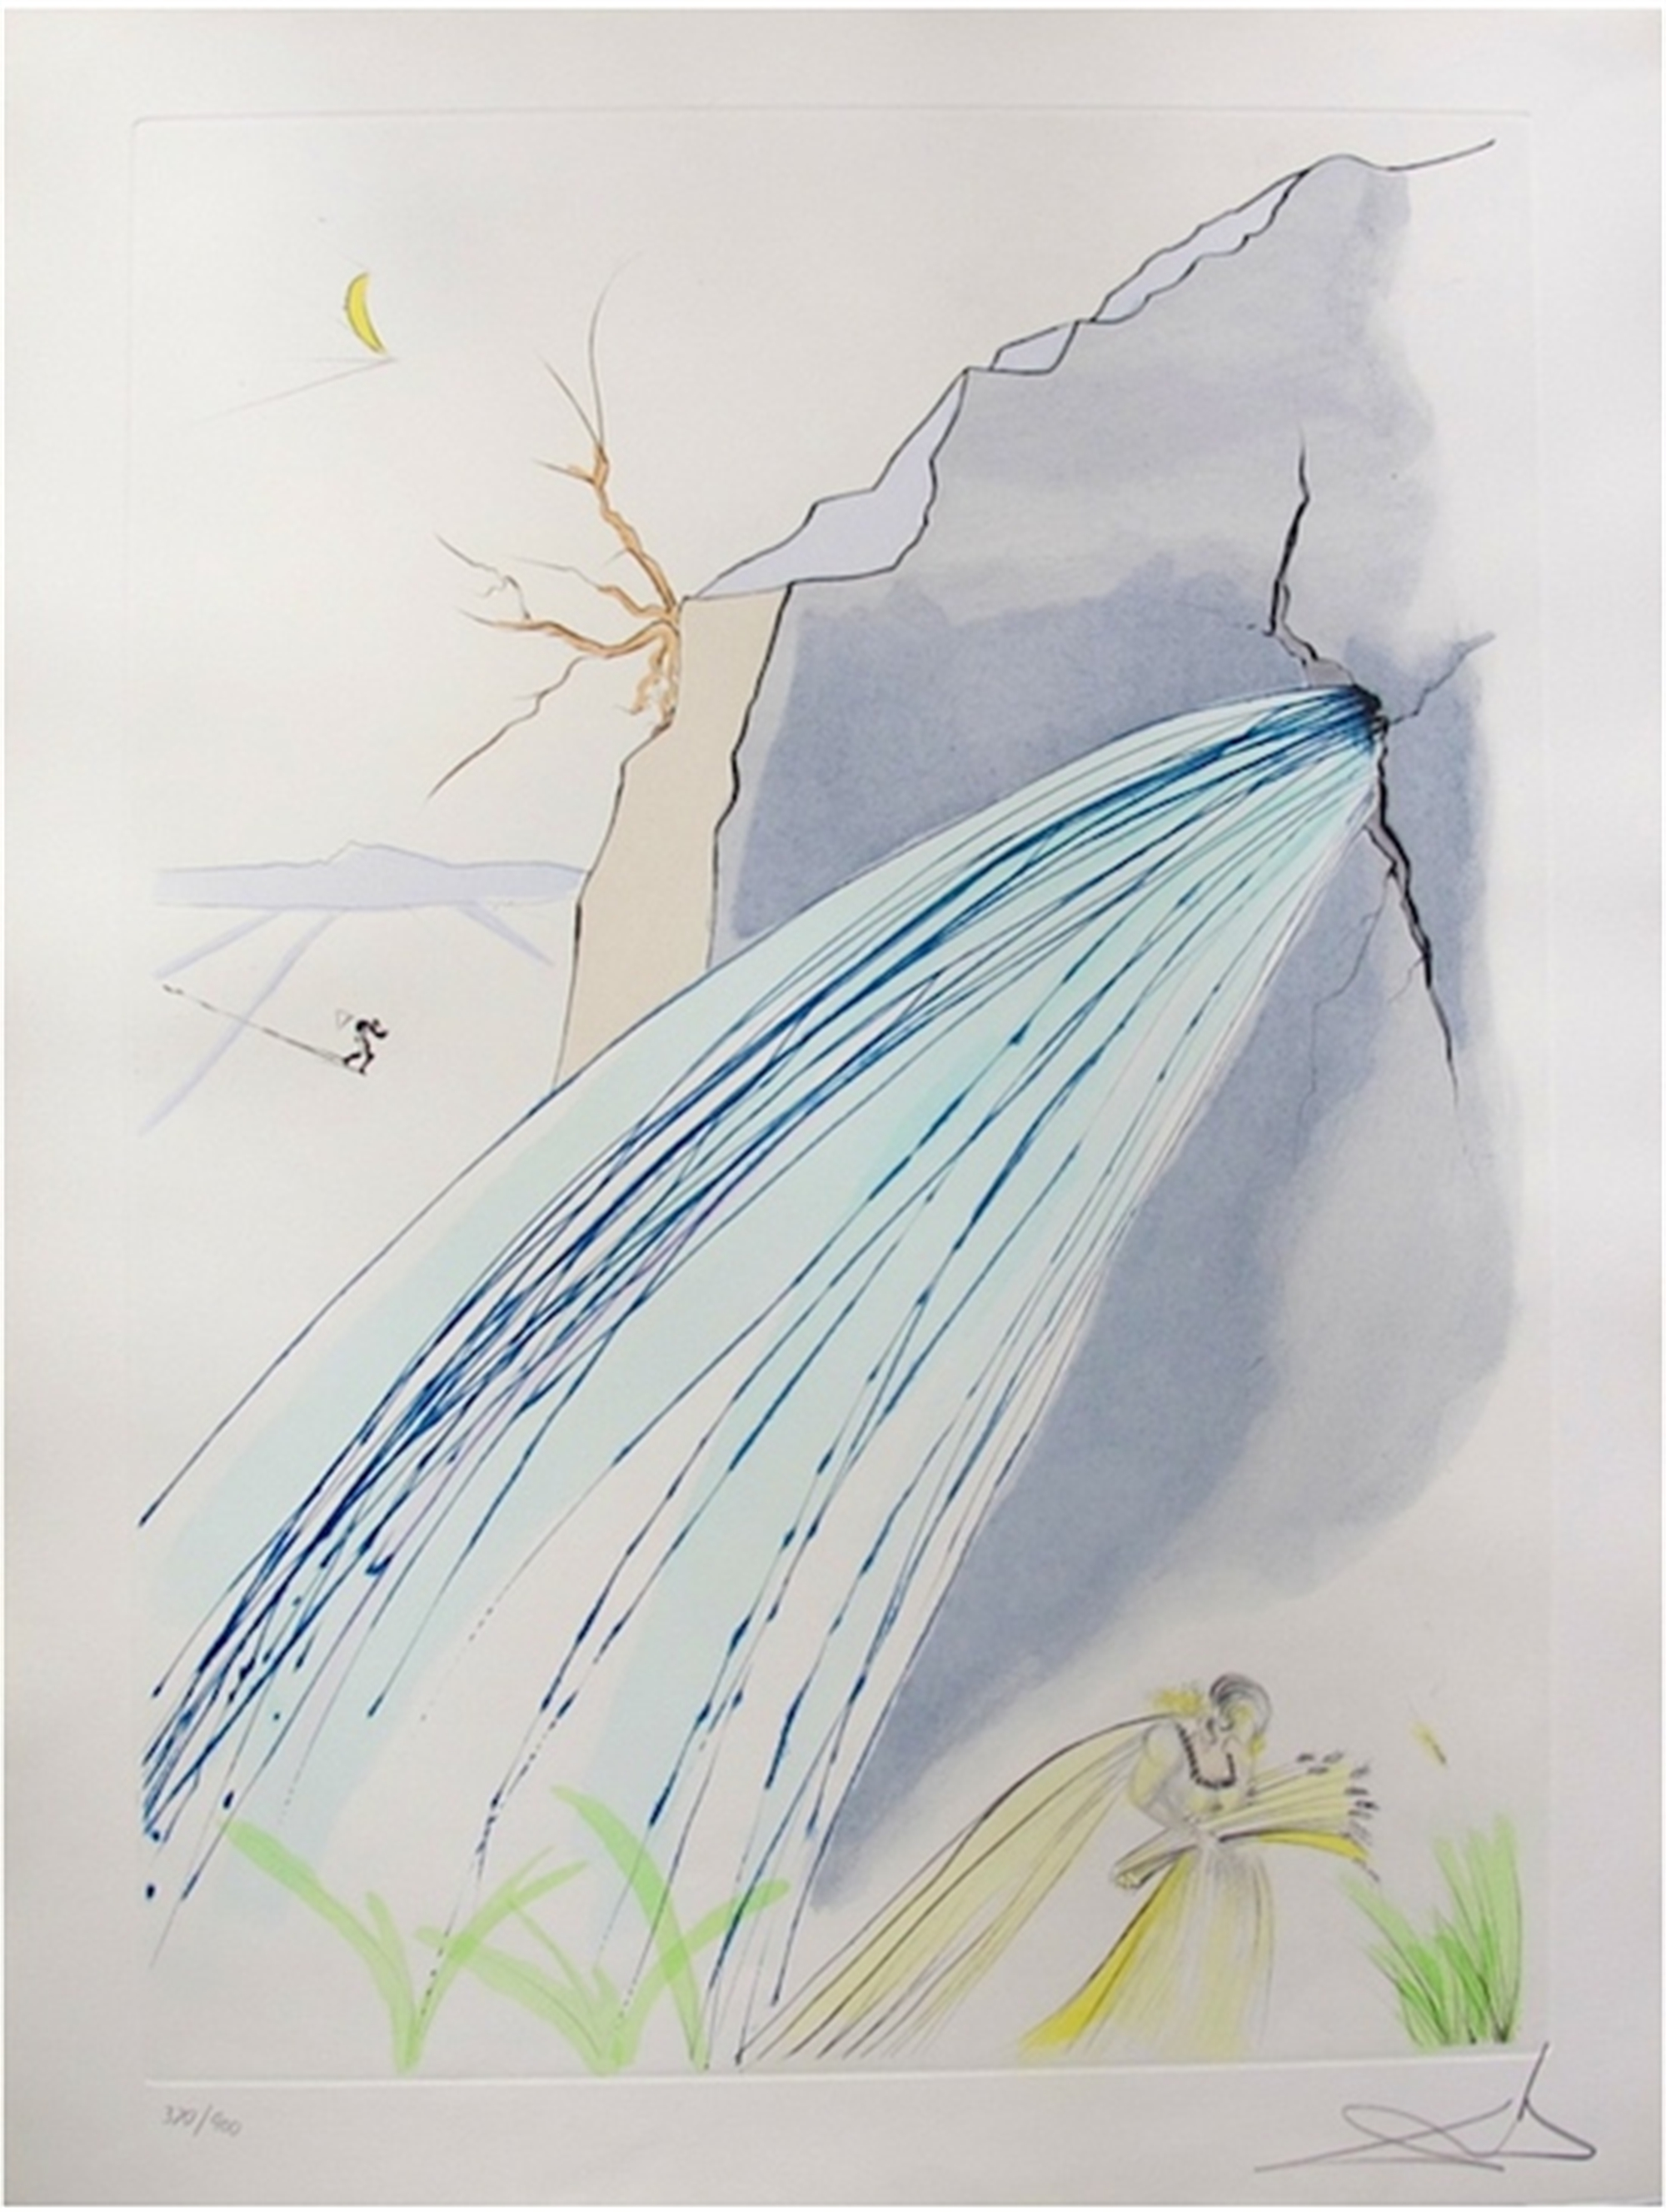 The Rock (from Our Historical Heritage, suite of 11) by Salvador Dali